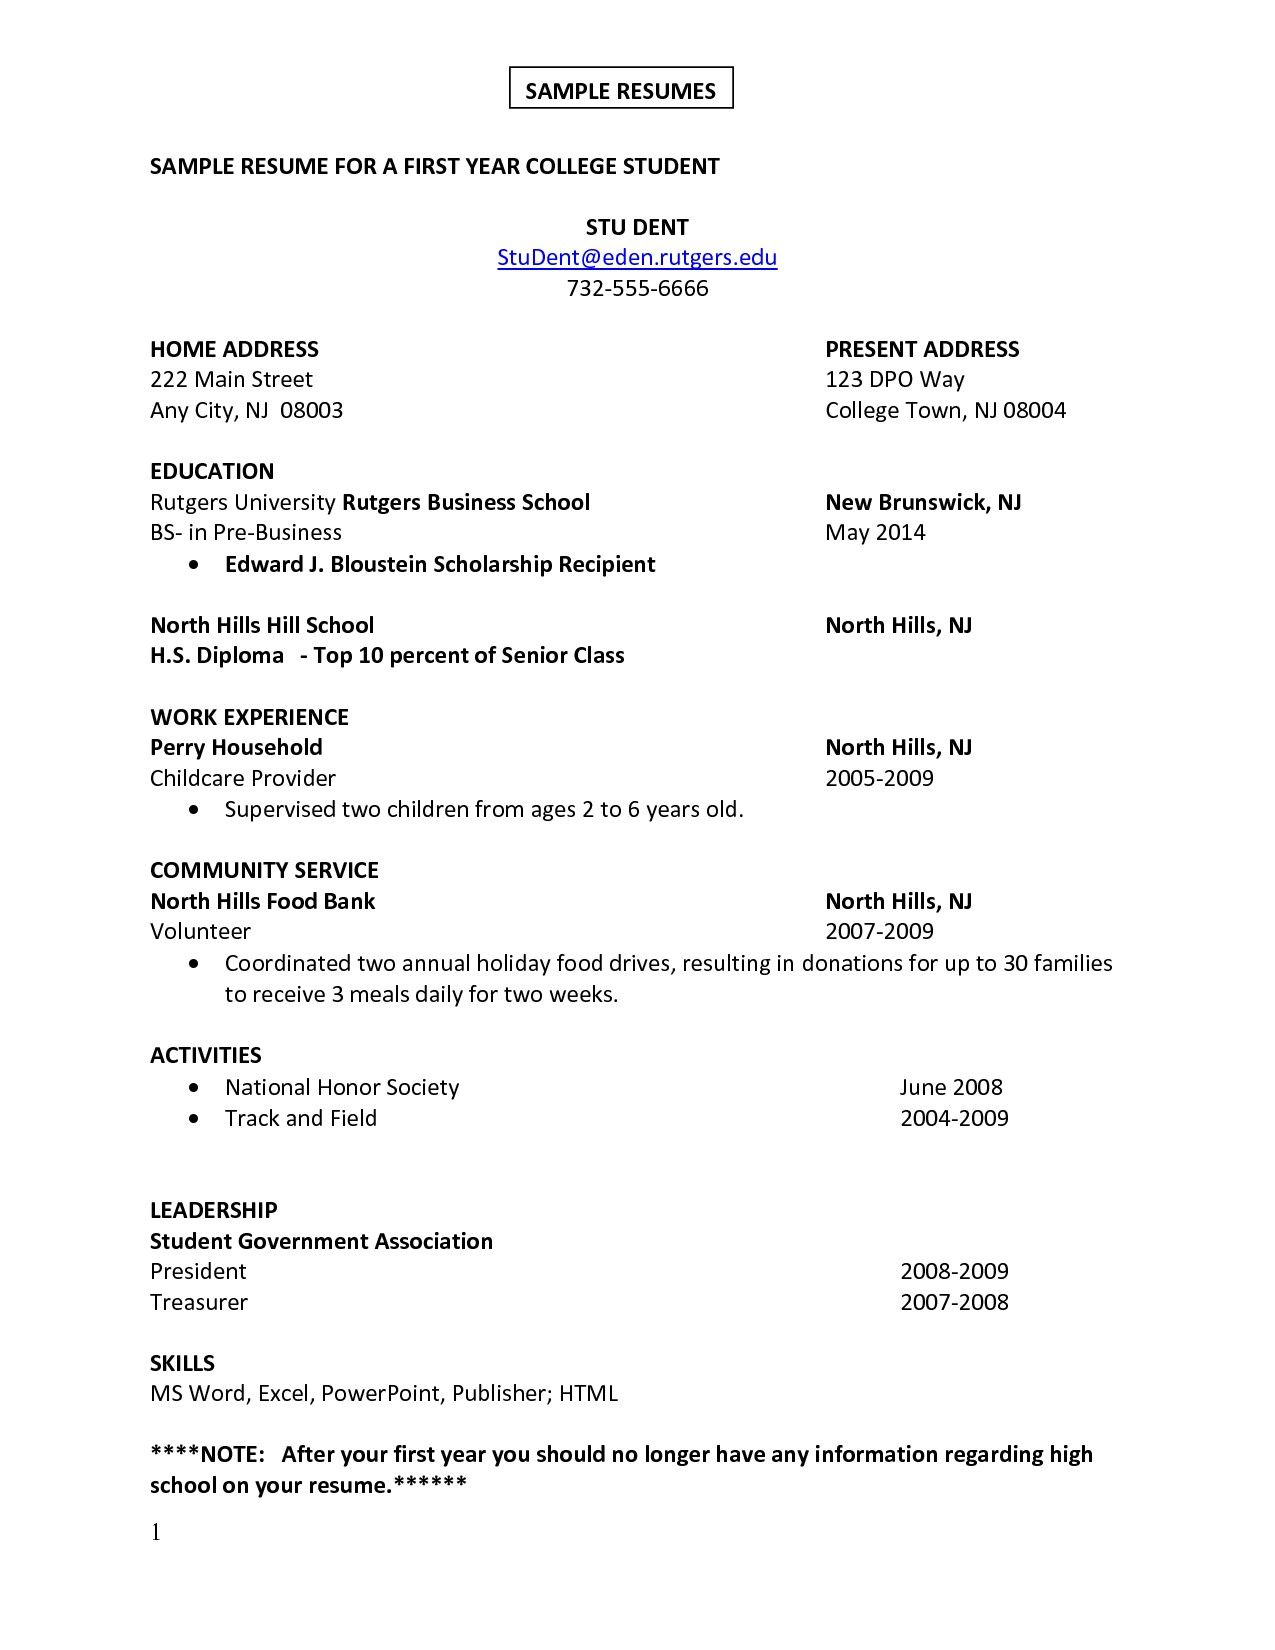 first job resume - Google Search | resume in 2018 | Pinterest | Job ...